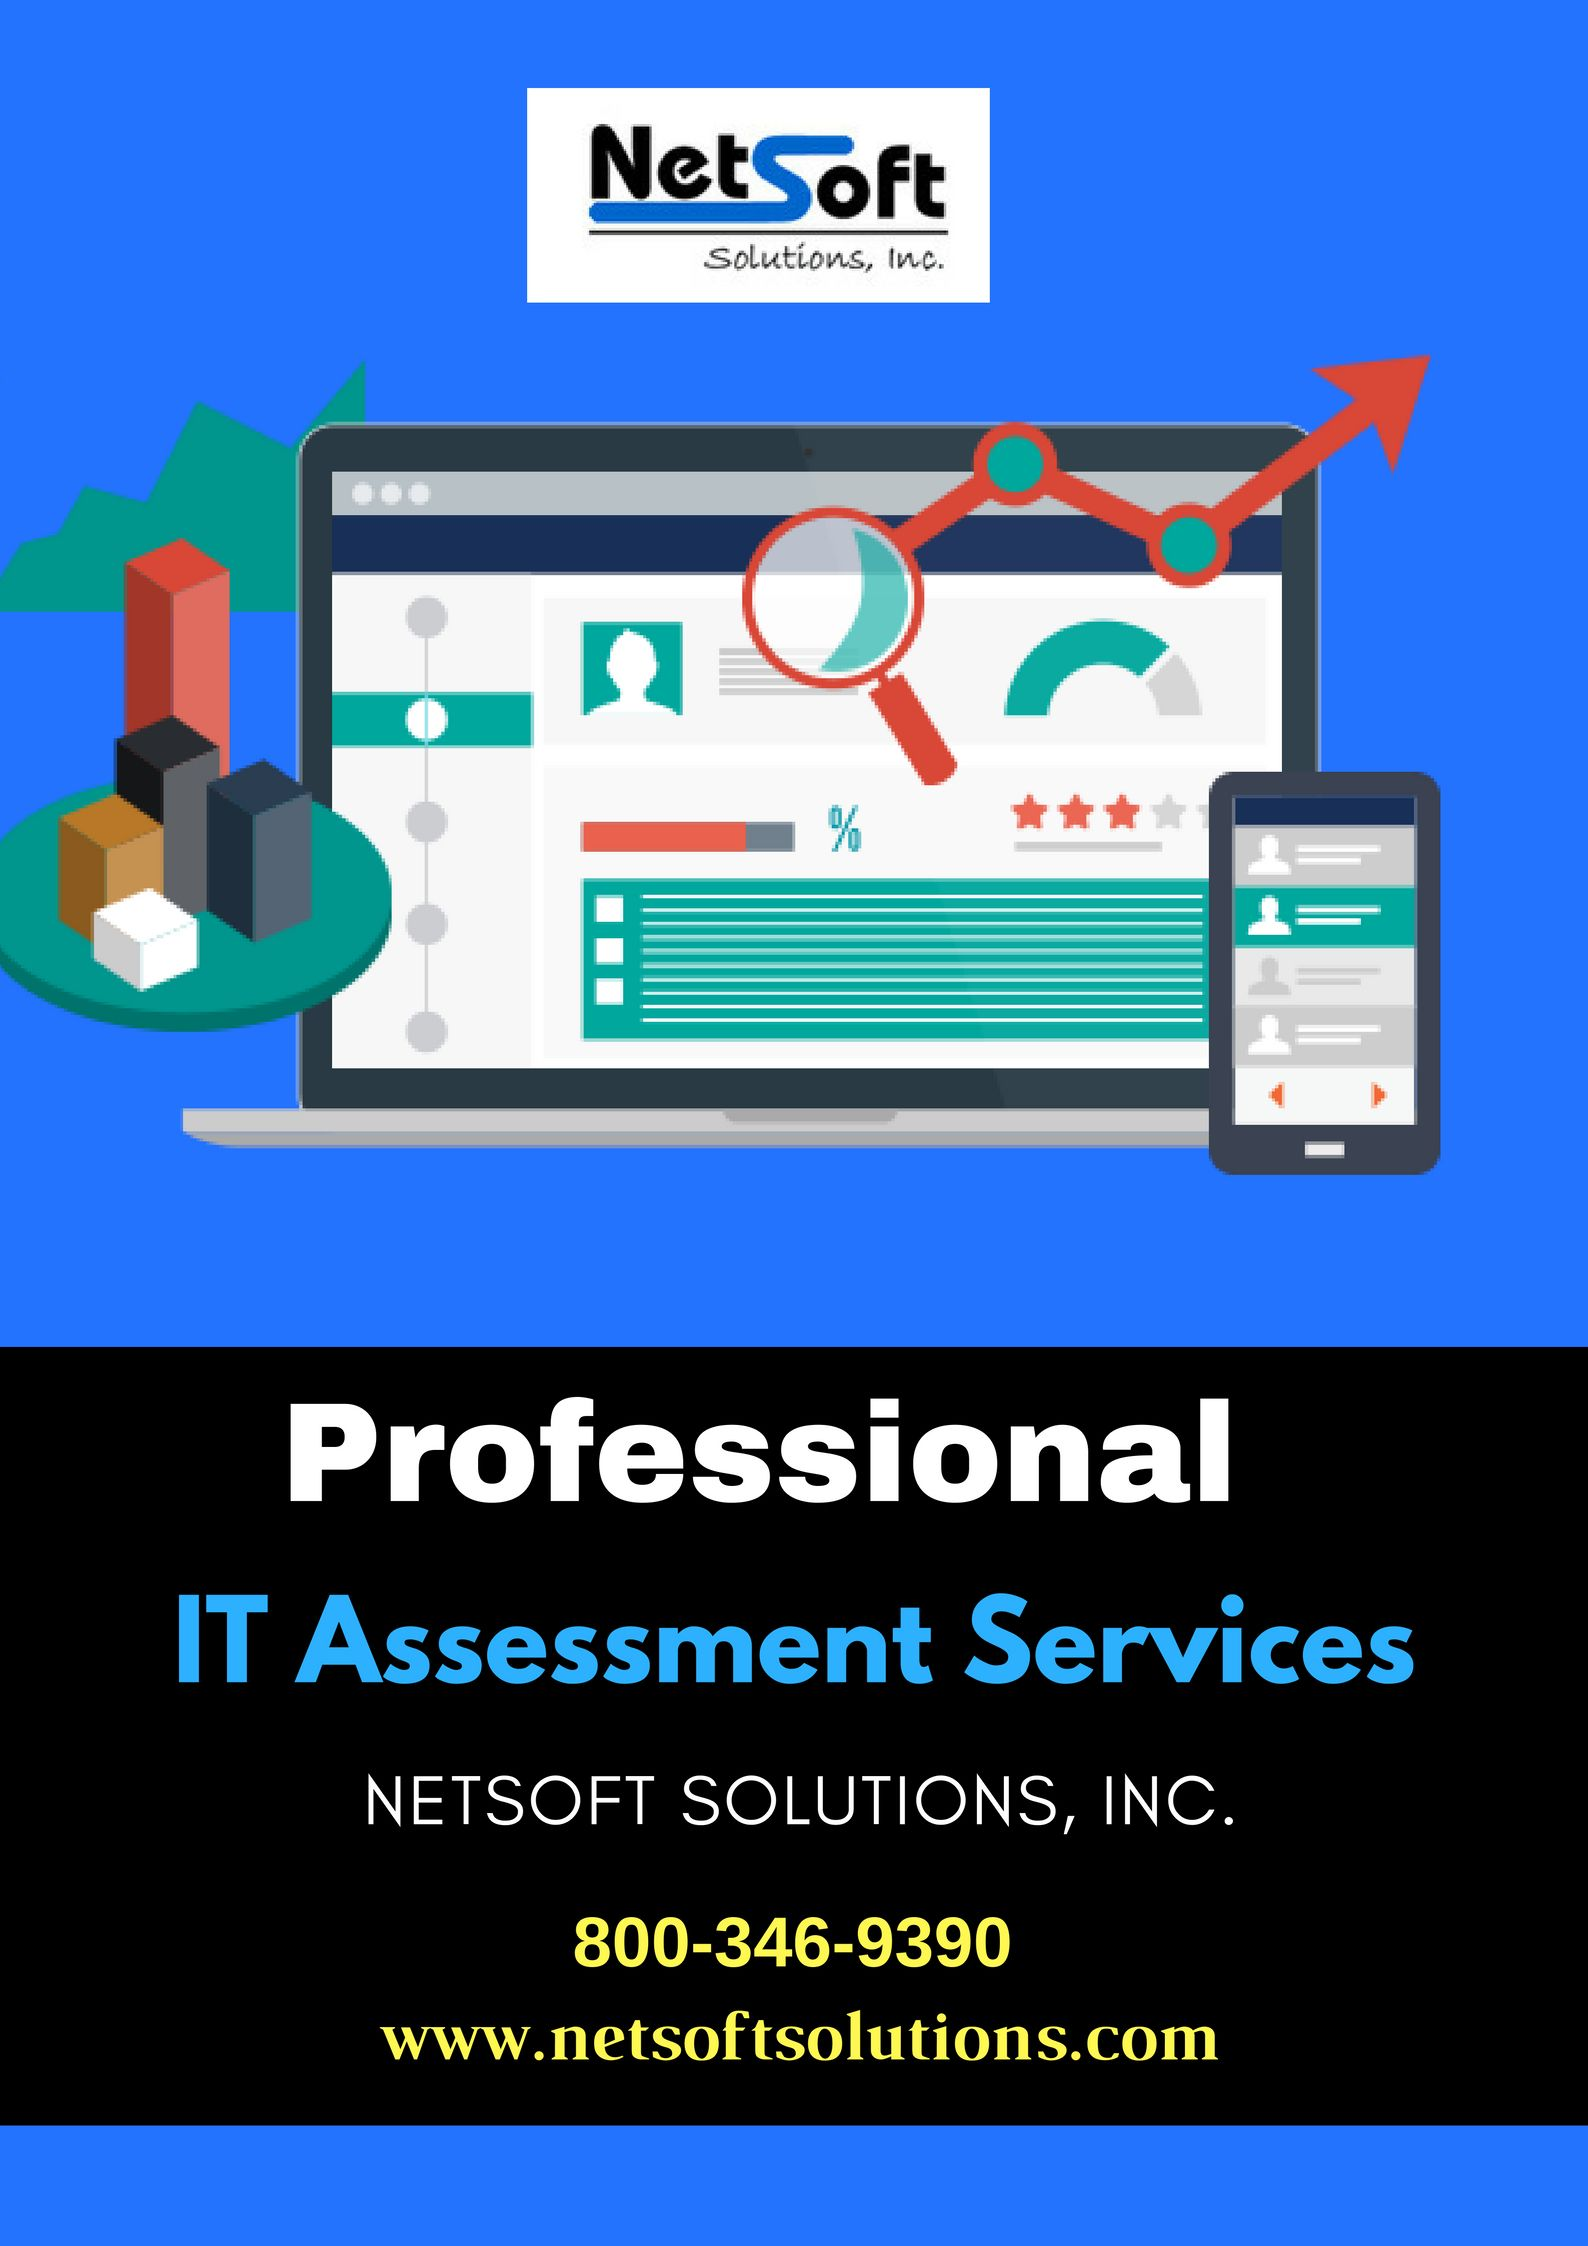 Find The 1 It Assessment Services For Your Information Technology System In New York Netsoft Solutions Is Technology Systems Information Technology Solutions